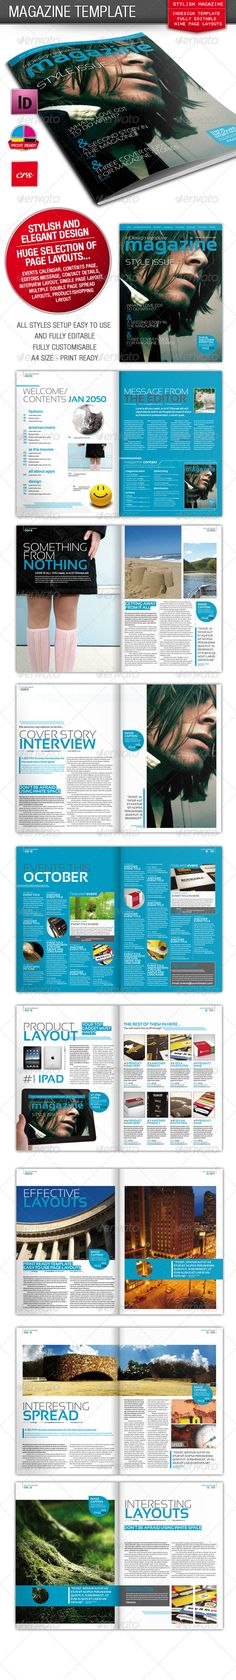 Pro Magazine templates. (b editors, go to the last few images for some horizontal ideas.)